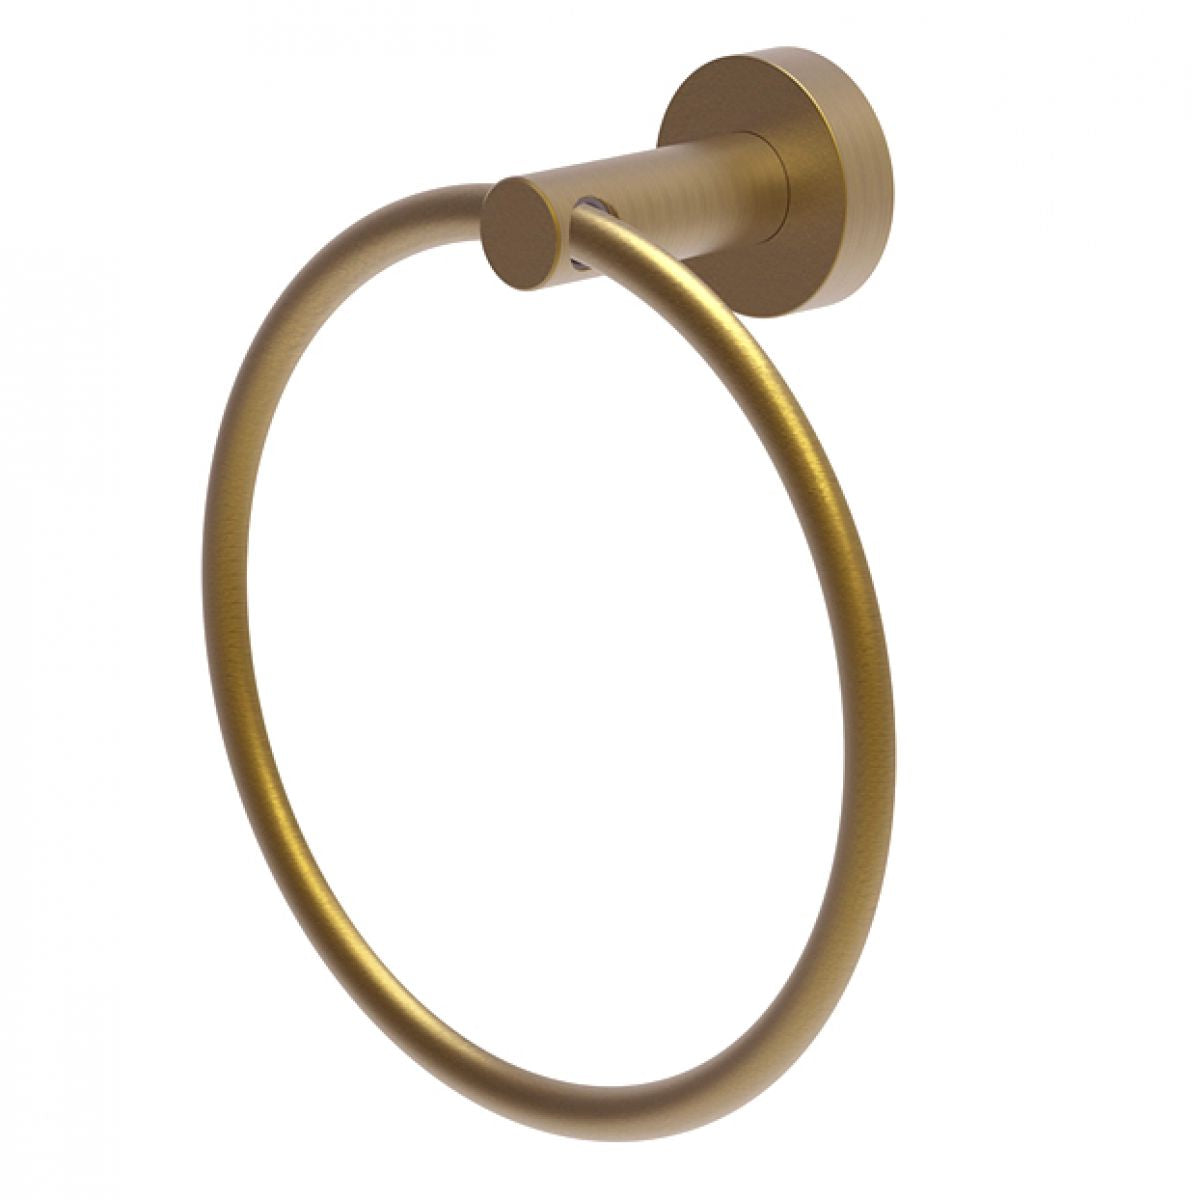 Hoxton Towel Ring - blueskybathrooms